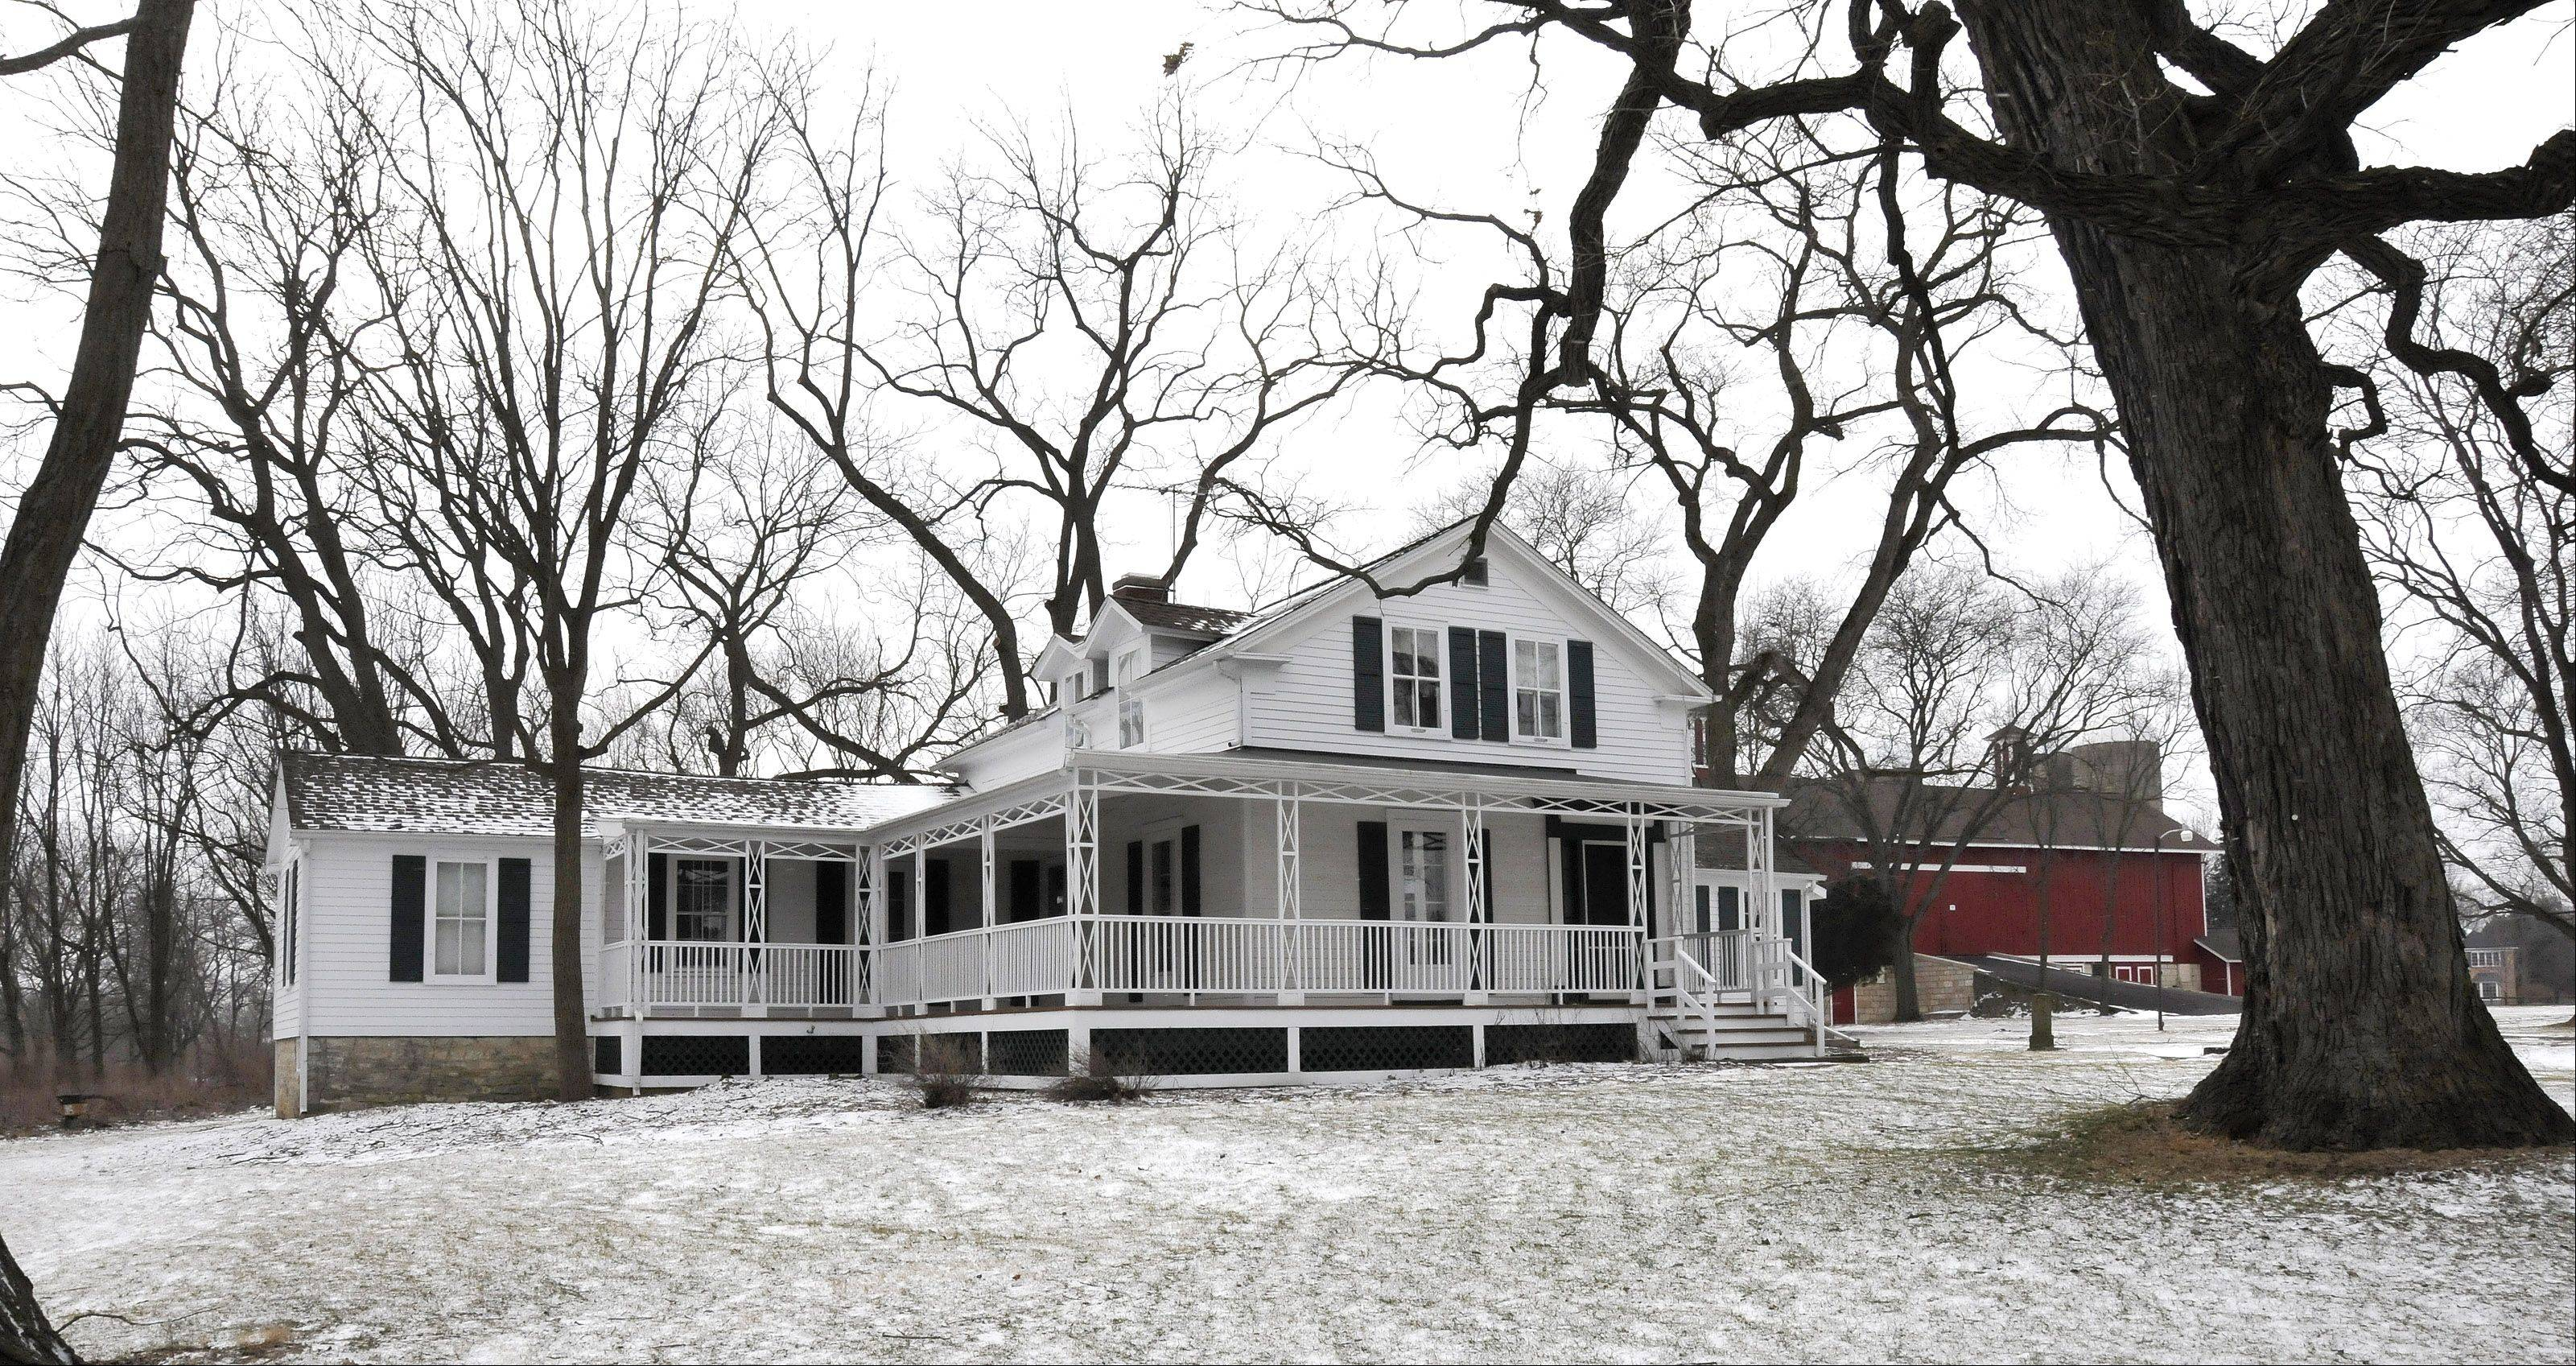 Oak Cottage: The farmhouse at Greene Farm was built by William Briggs Greene in 1841. It was acquired by the forest preserve in 1971.